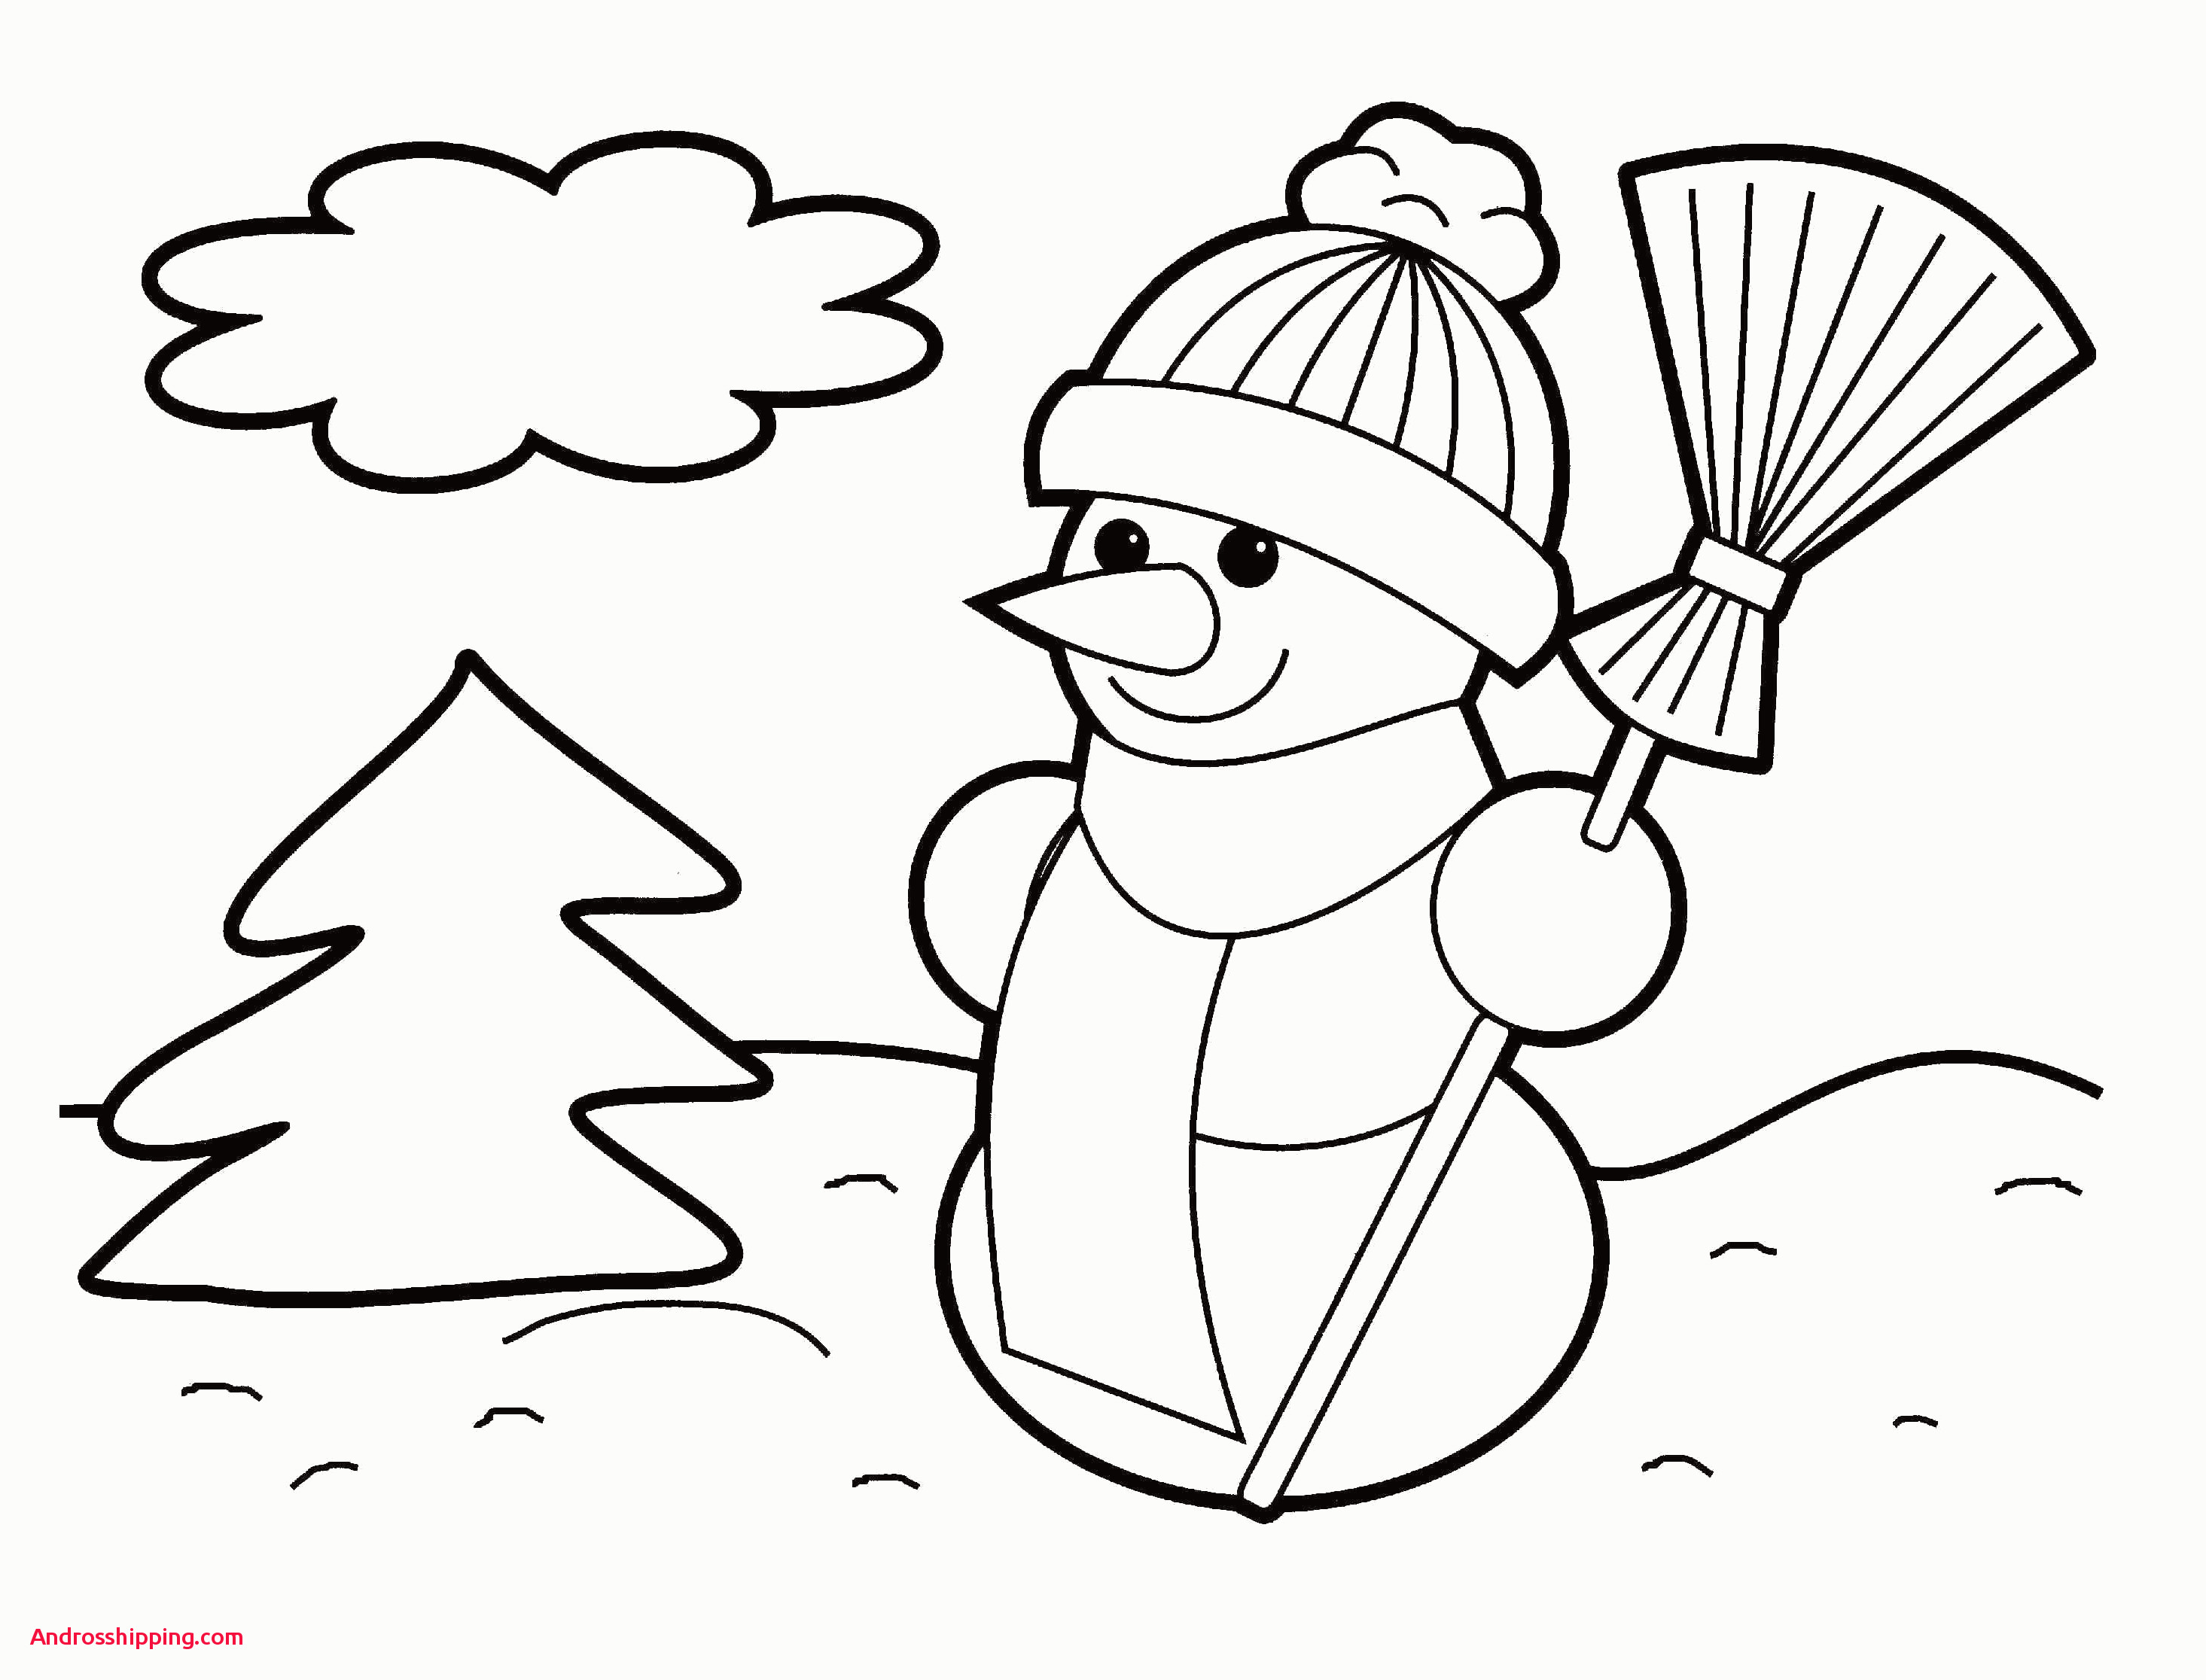 Christmas Rabbit Coloring Pages With 5 Beautiful Minecraft Androsshipping Com